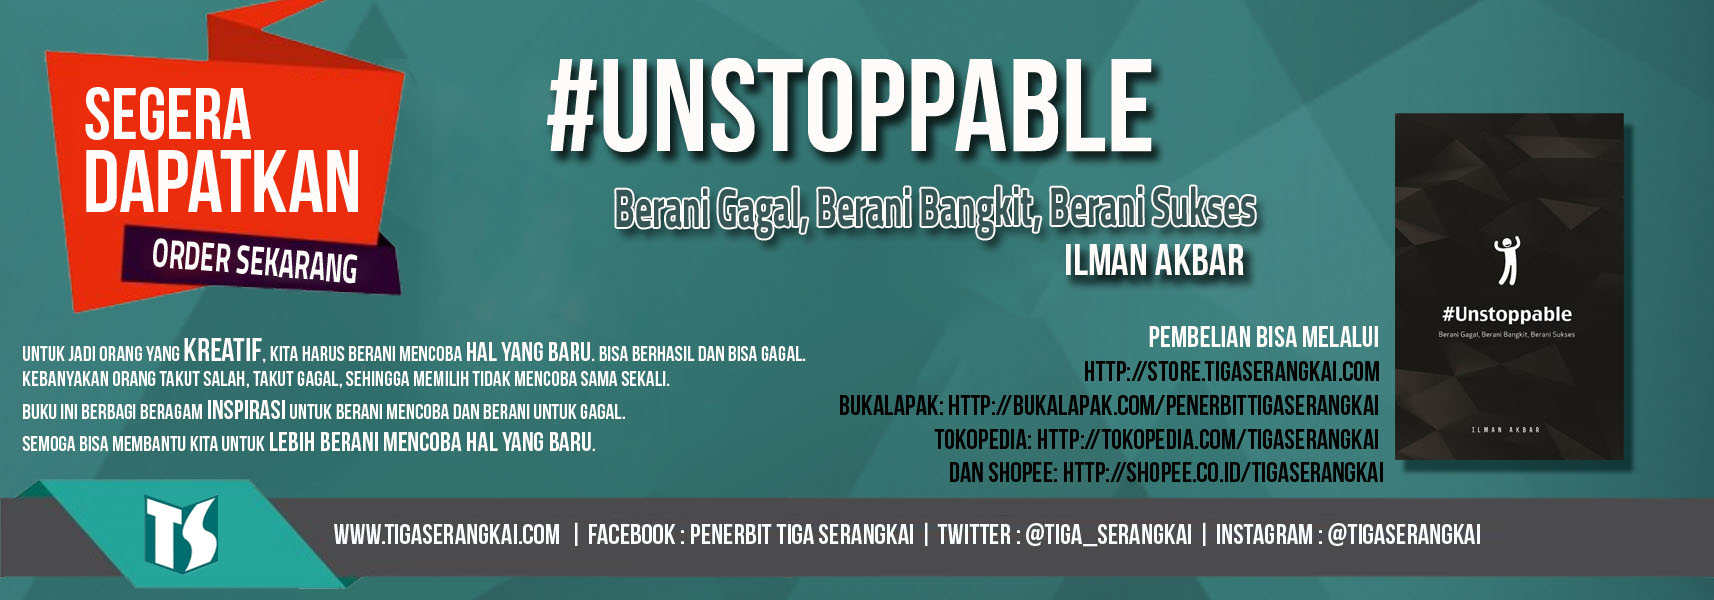 Promo #Unstoppable